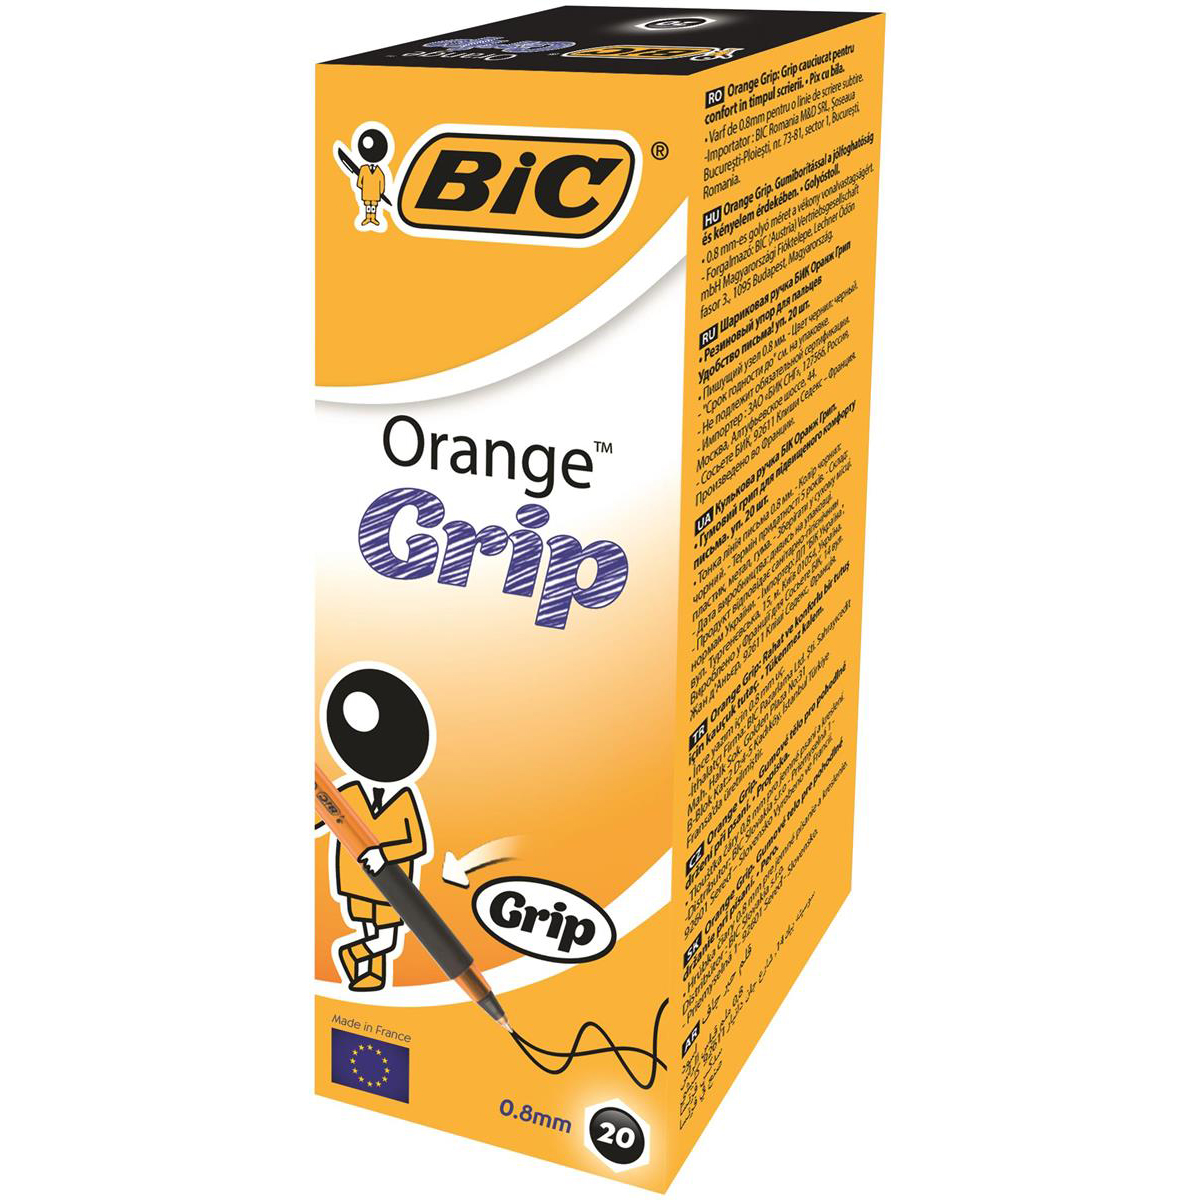 Bic Orange Grip Ball Pen Fine Translucent Barrel 0.8mm Tip 0.3mm Line Black Ref 811925 Pack 20